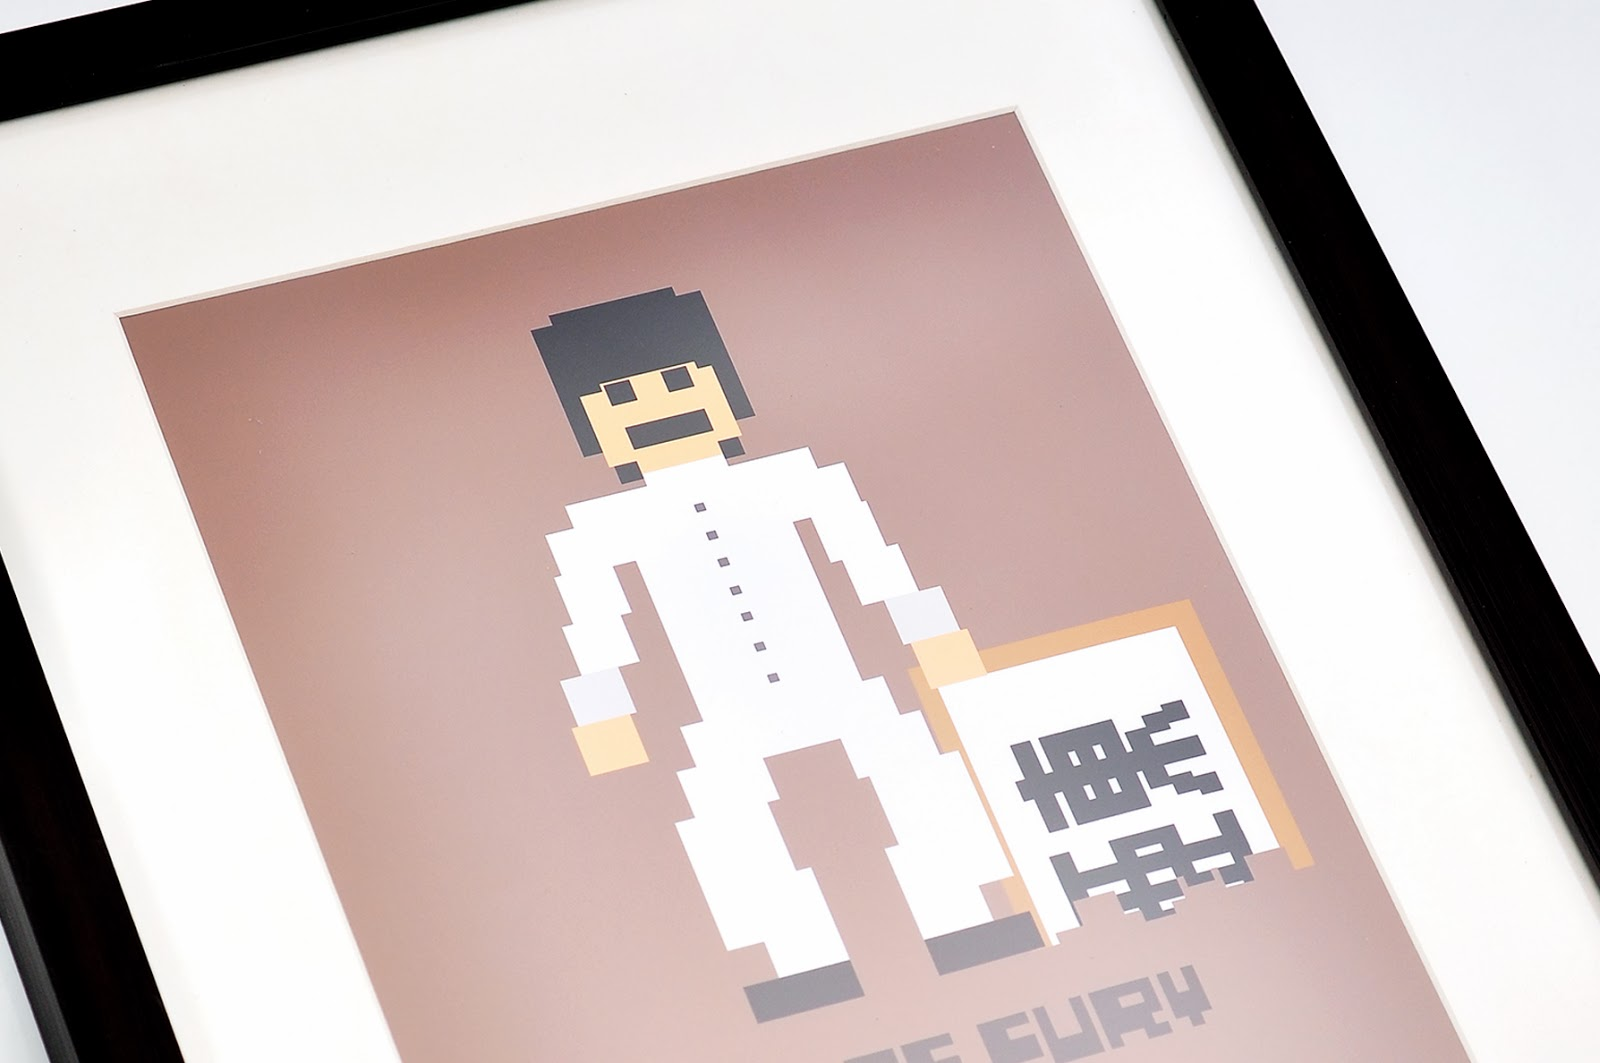 toto workshop in memory of bruce lee pixel design project wall art rh totoproductionhouse blogspot com